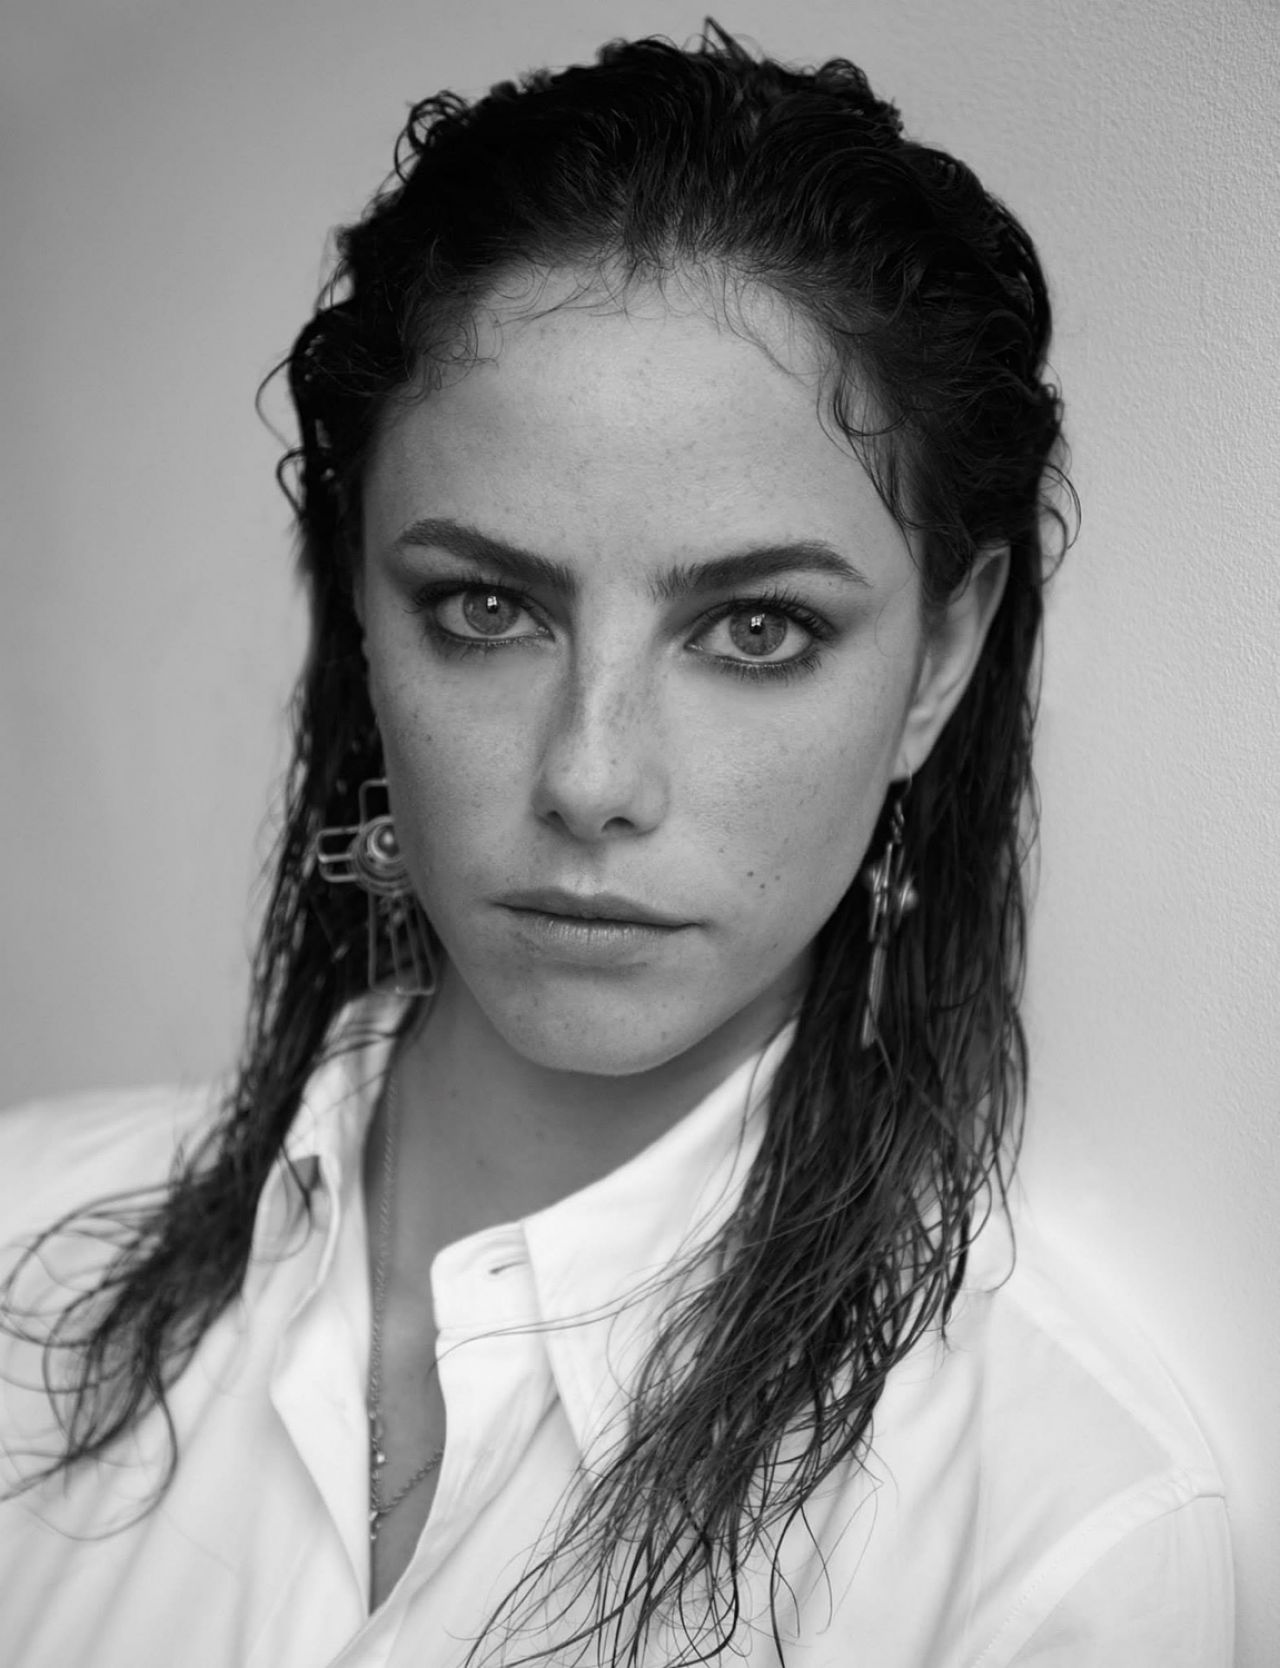 Kaya Scodelario For mobile